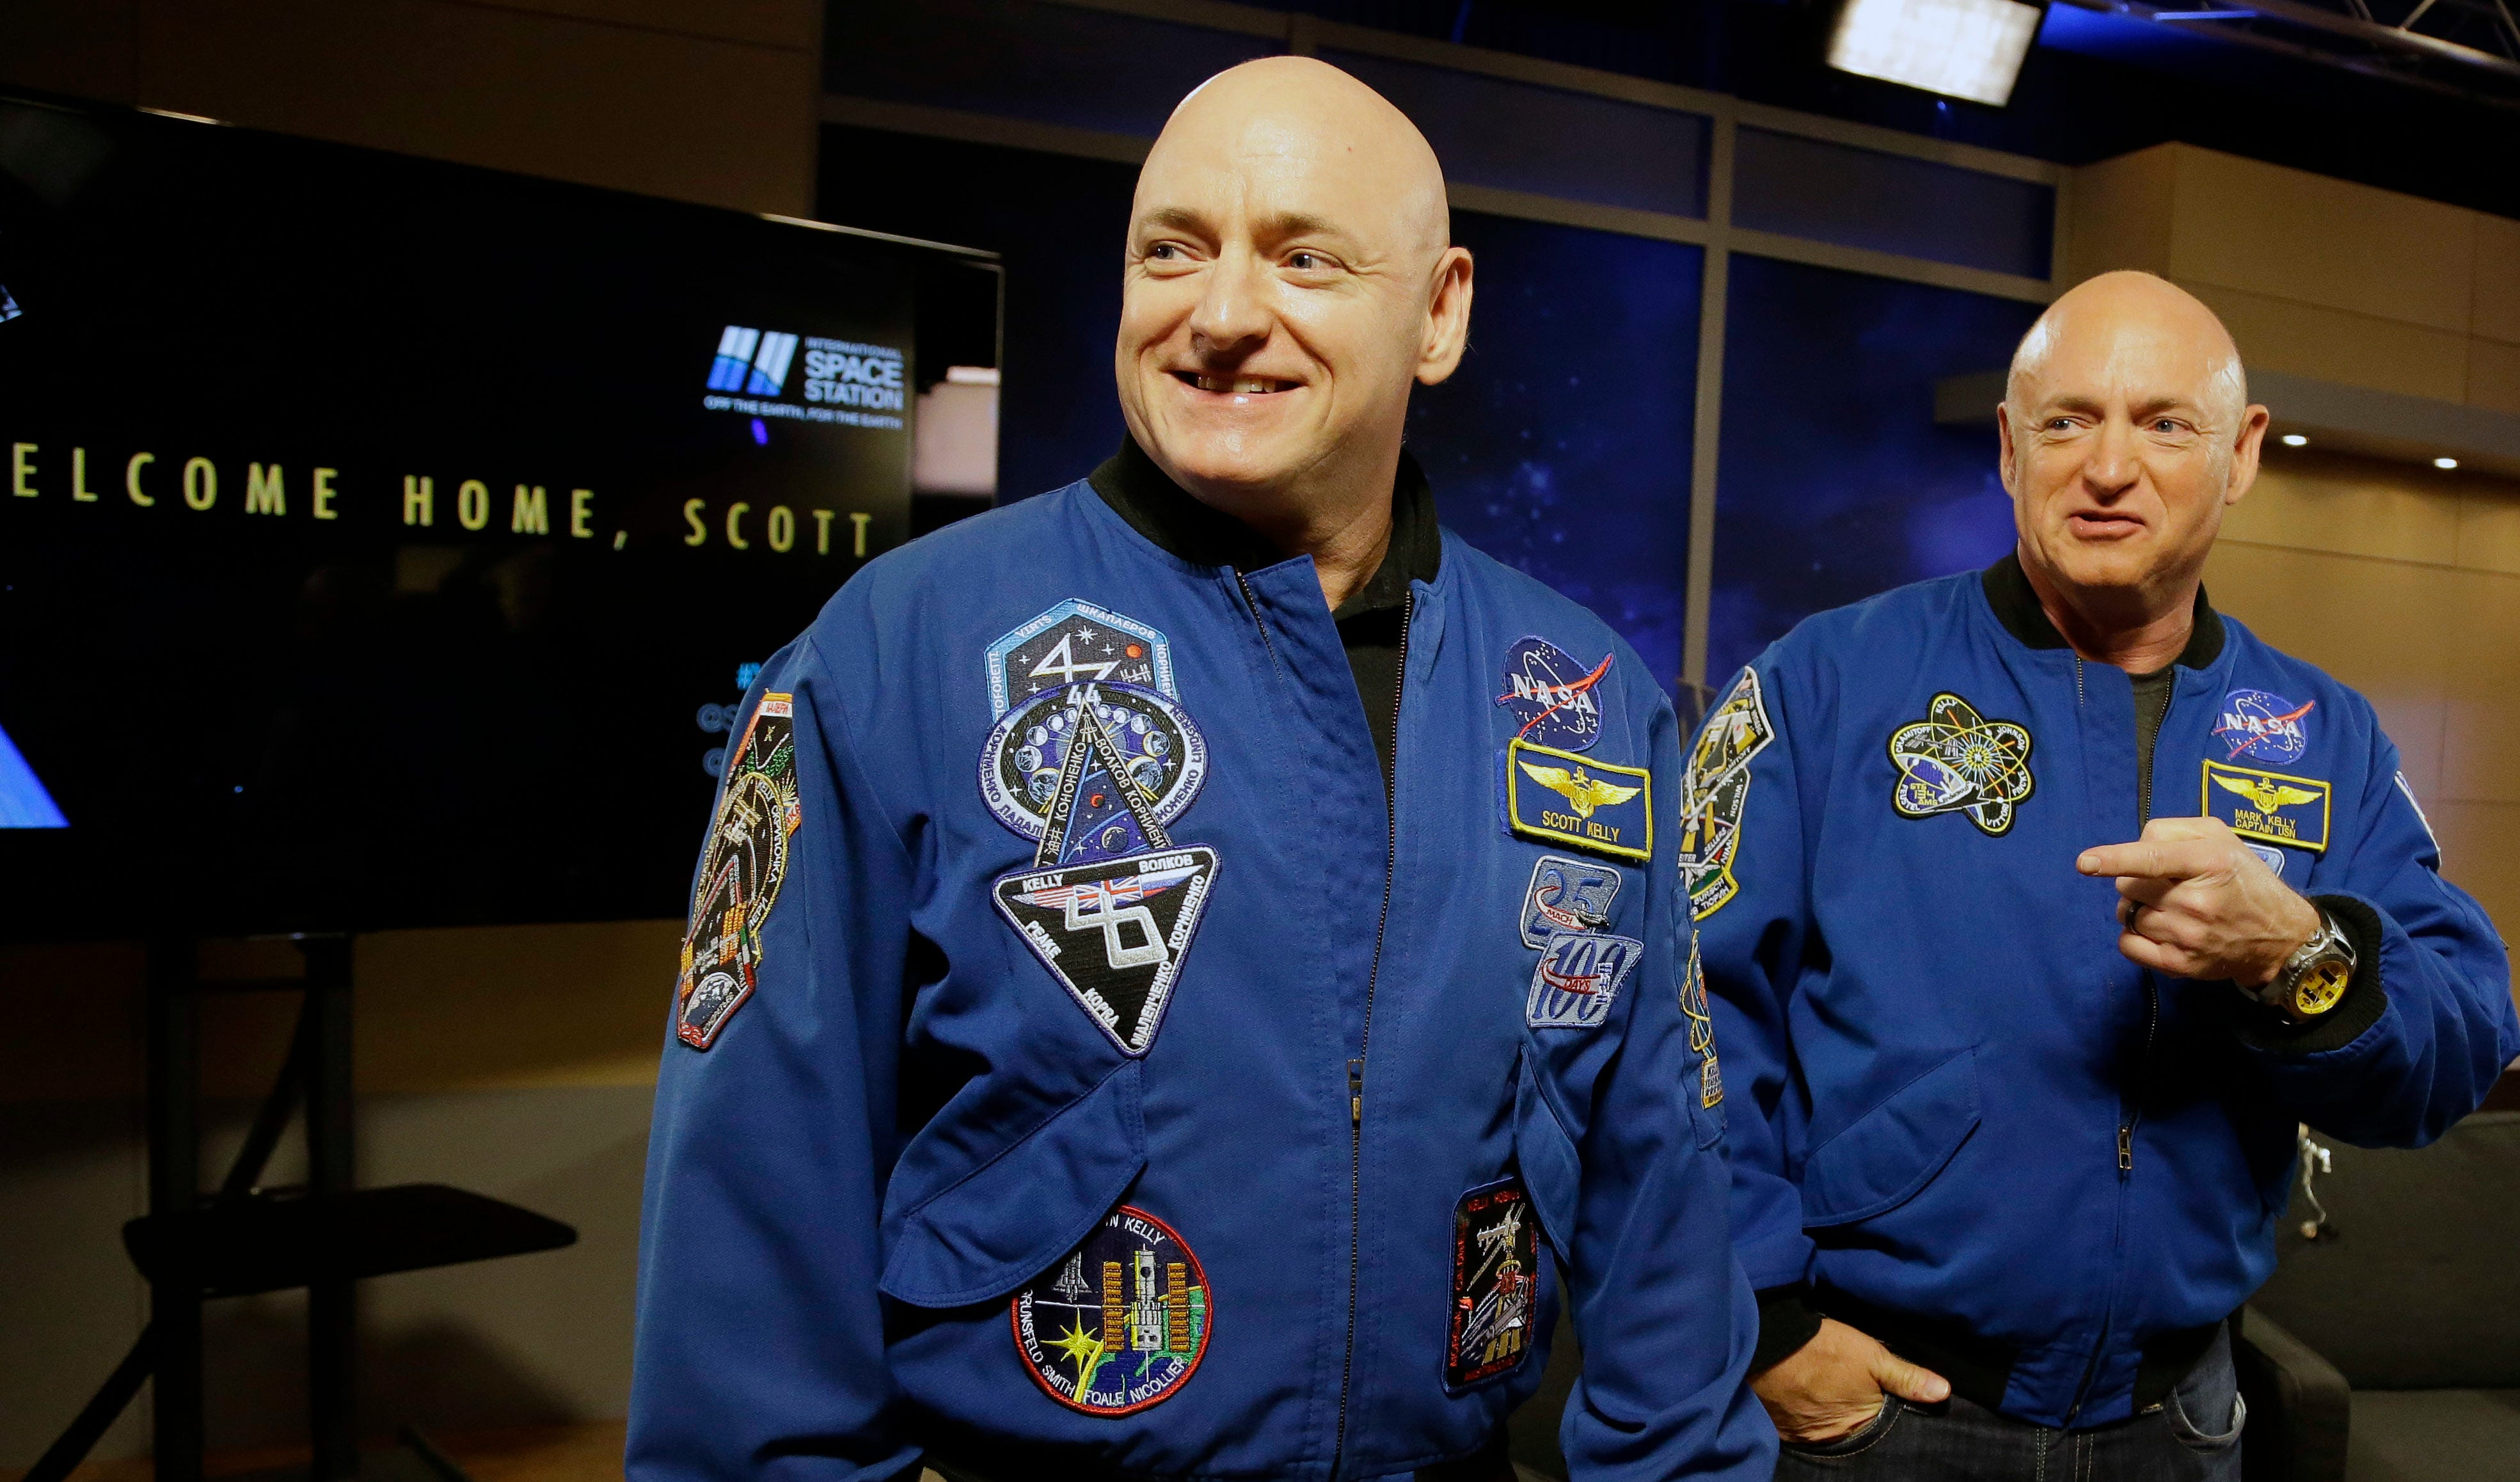 Life in outer space: NASA studies health changes between astronaut twins Scott and Mark Kelly